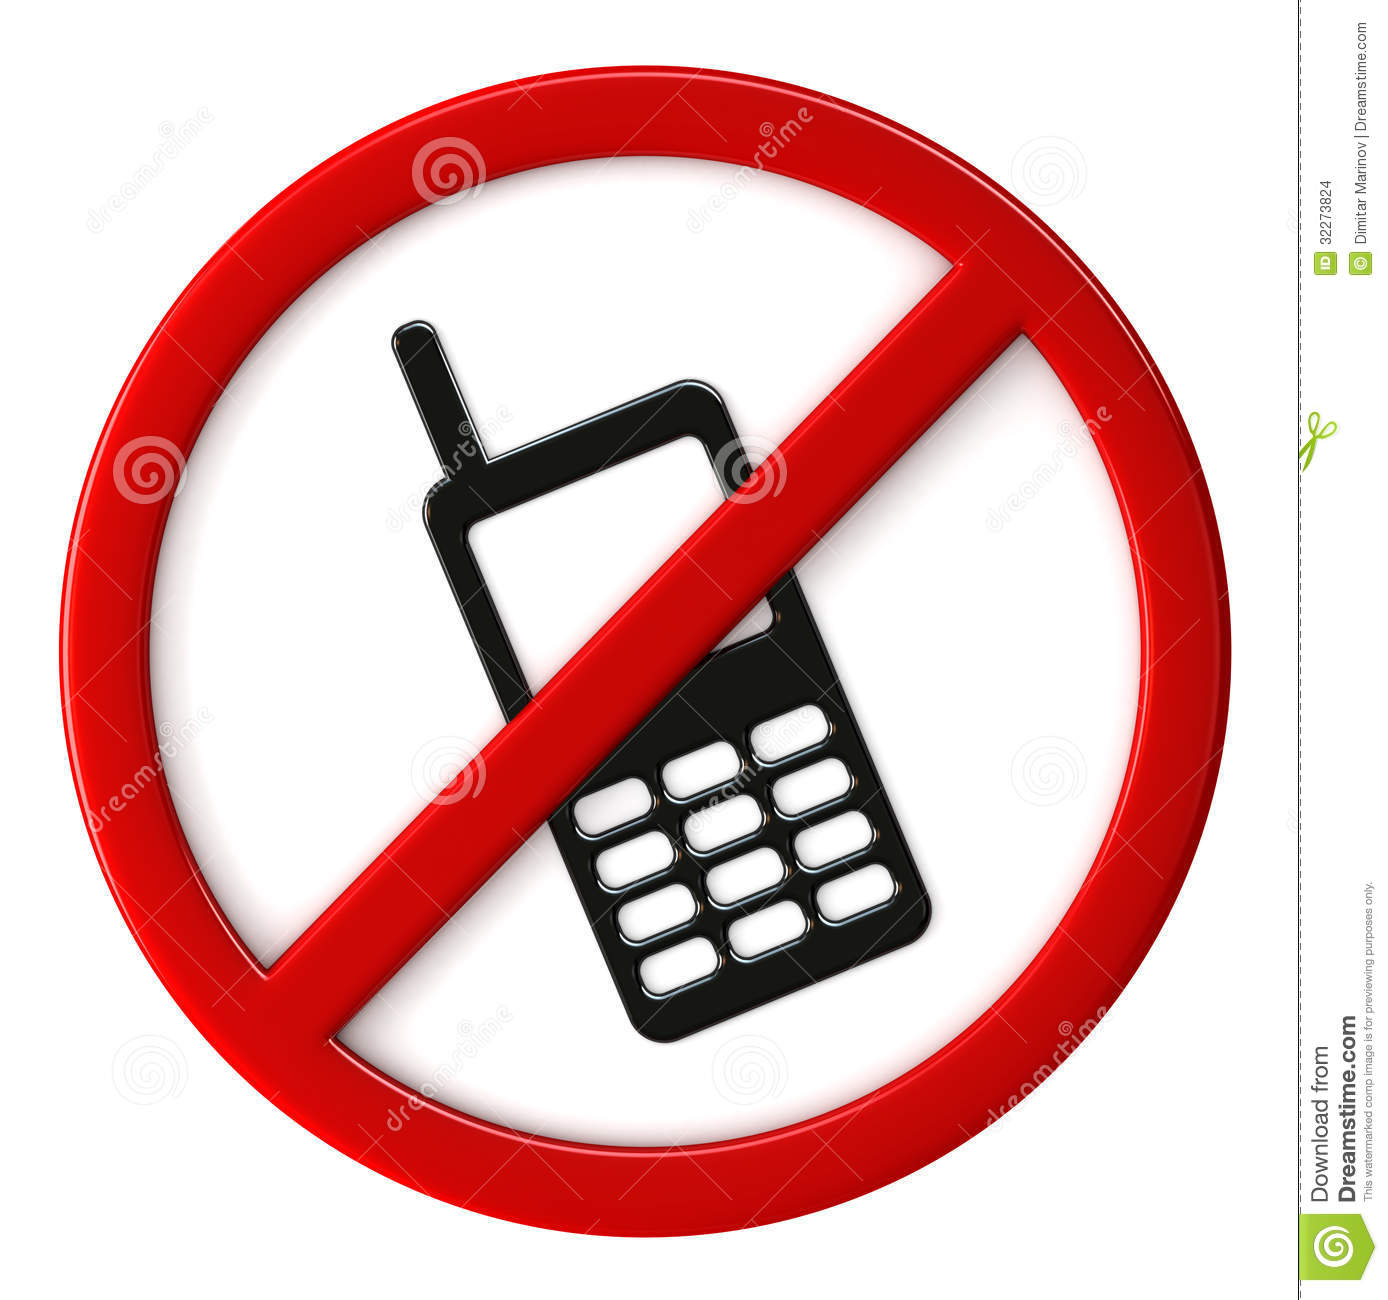 clipart cell phone use - photo #39